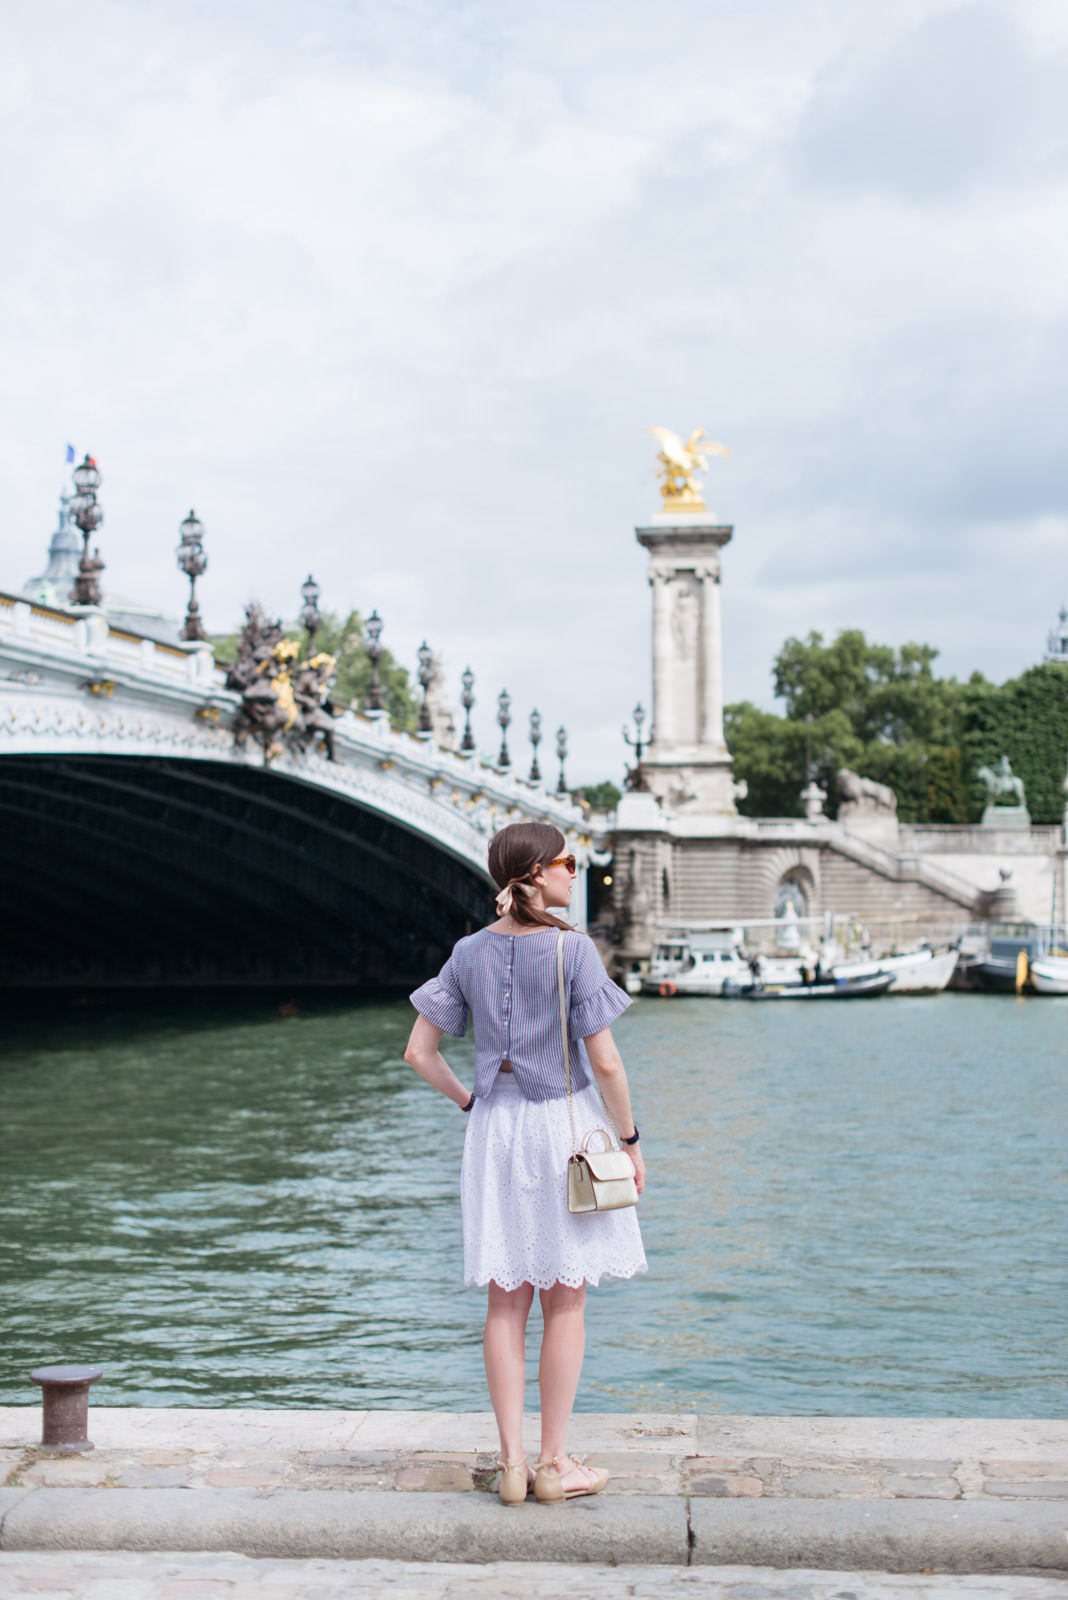 Blog-Modea-And-The-City-Looks-Sous-Le-Pont-Alexandre-III-4